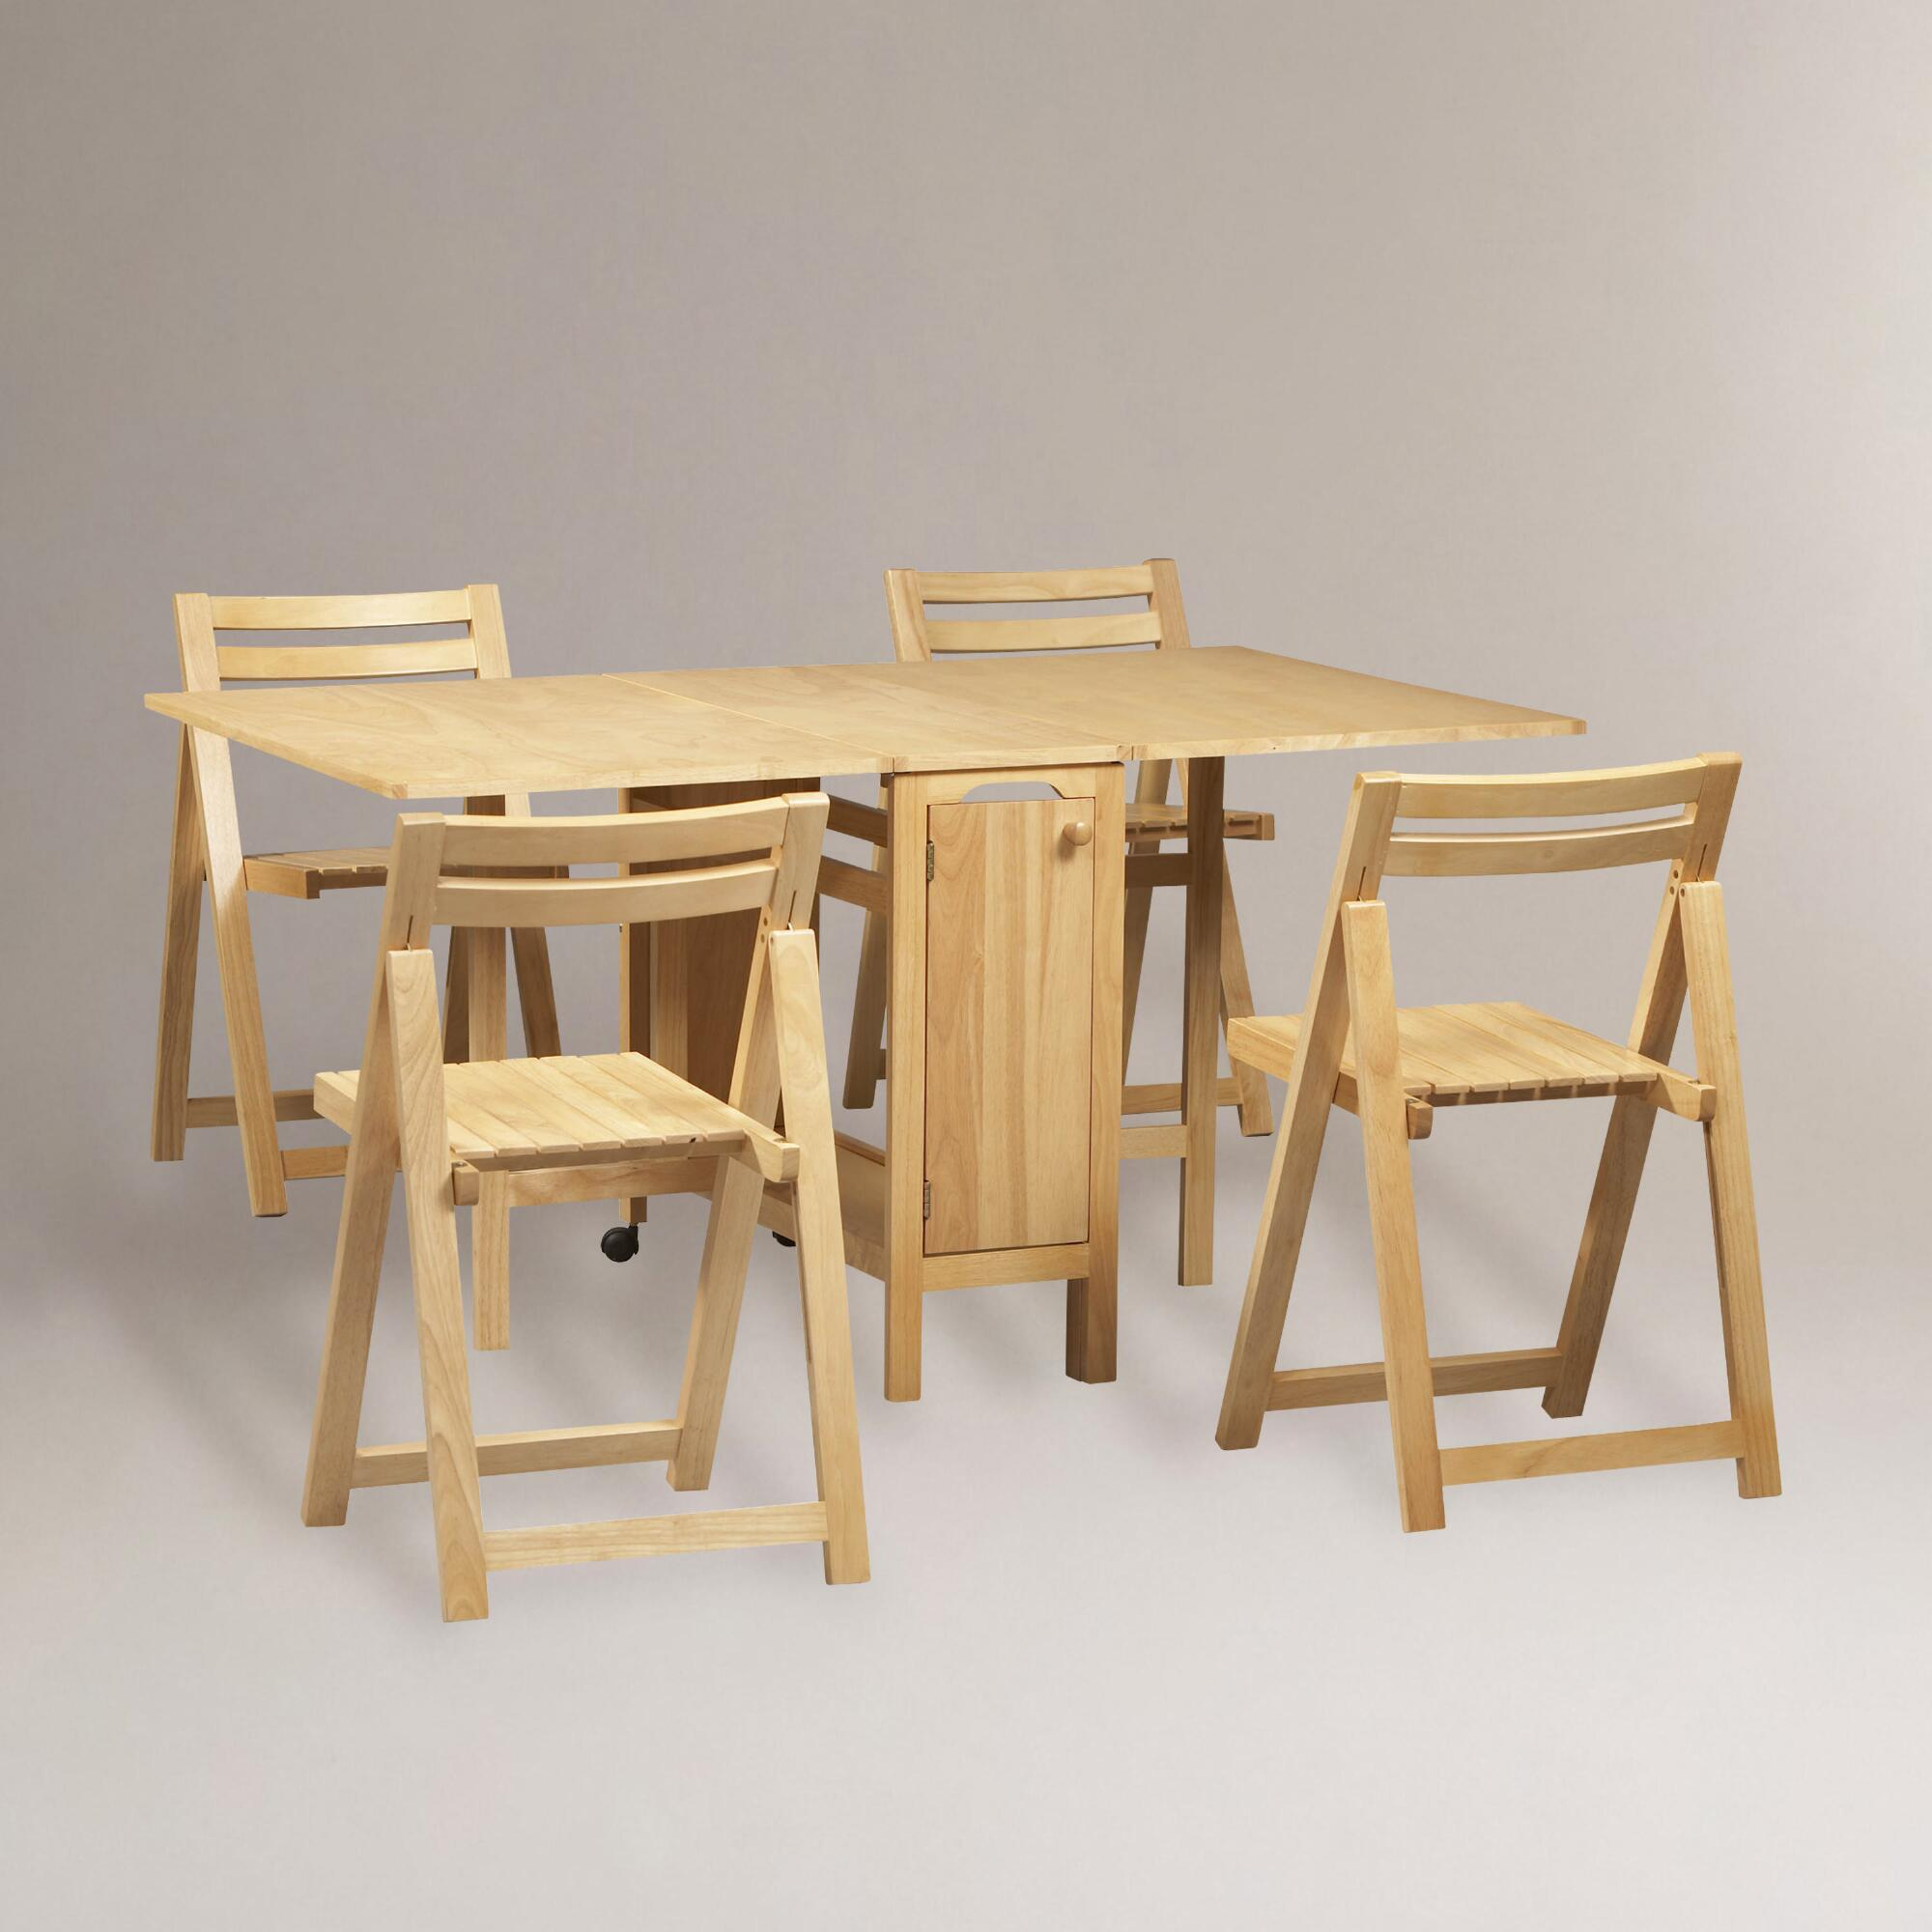 Natural Lawson Space Saver Table & Chair Set | World Market